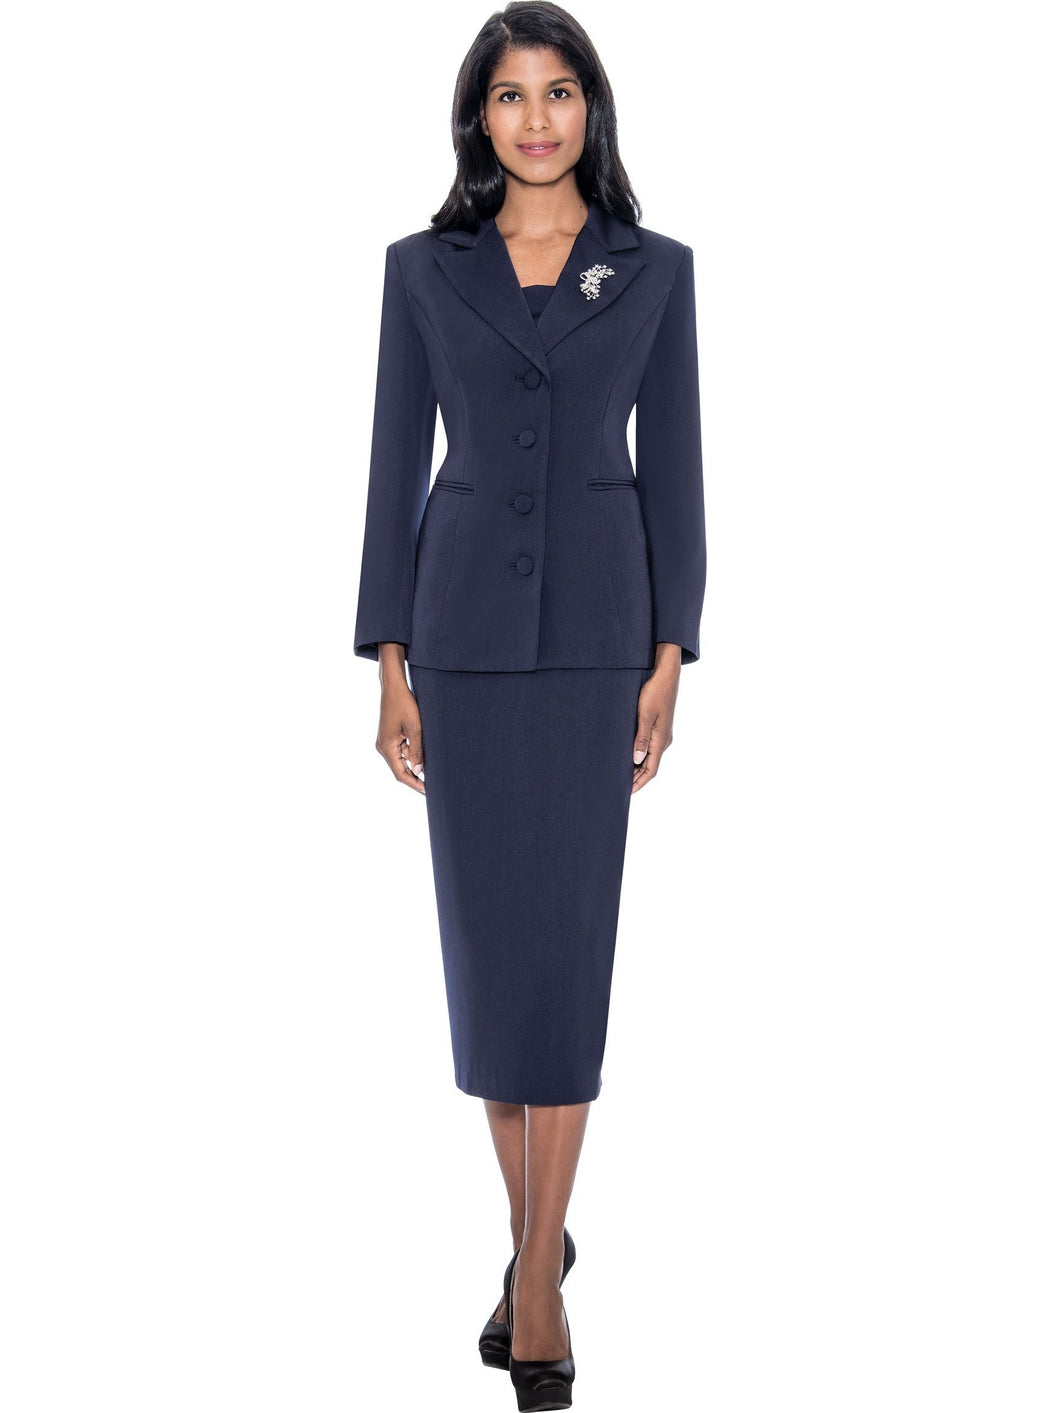 G13382 Navy Usher Suit, Church, Choir, Group Uniform